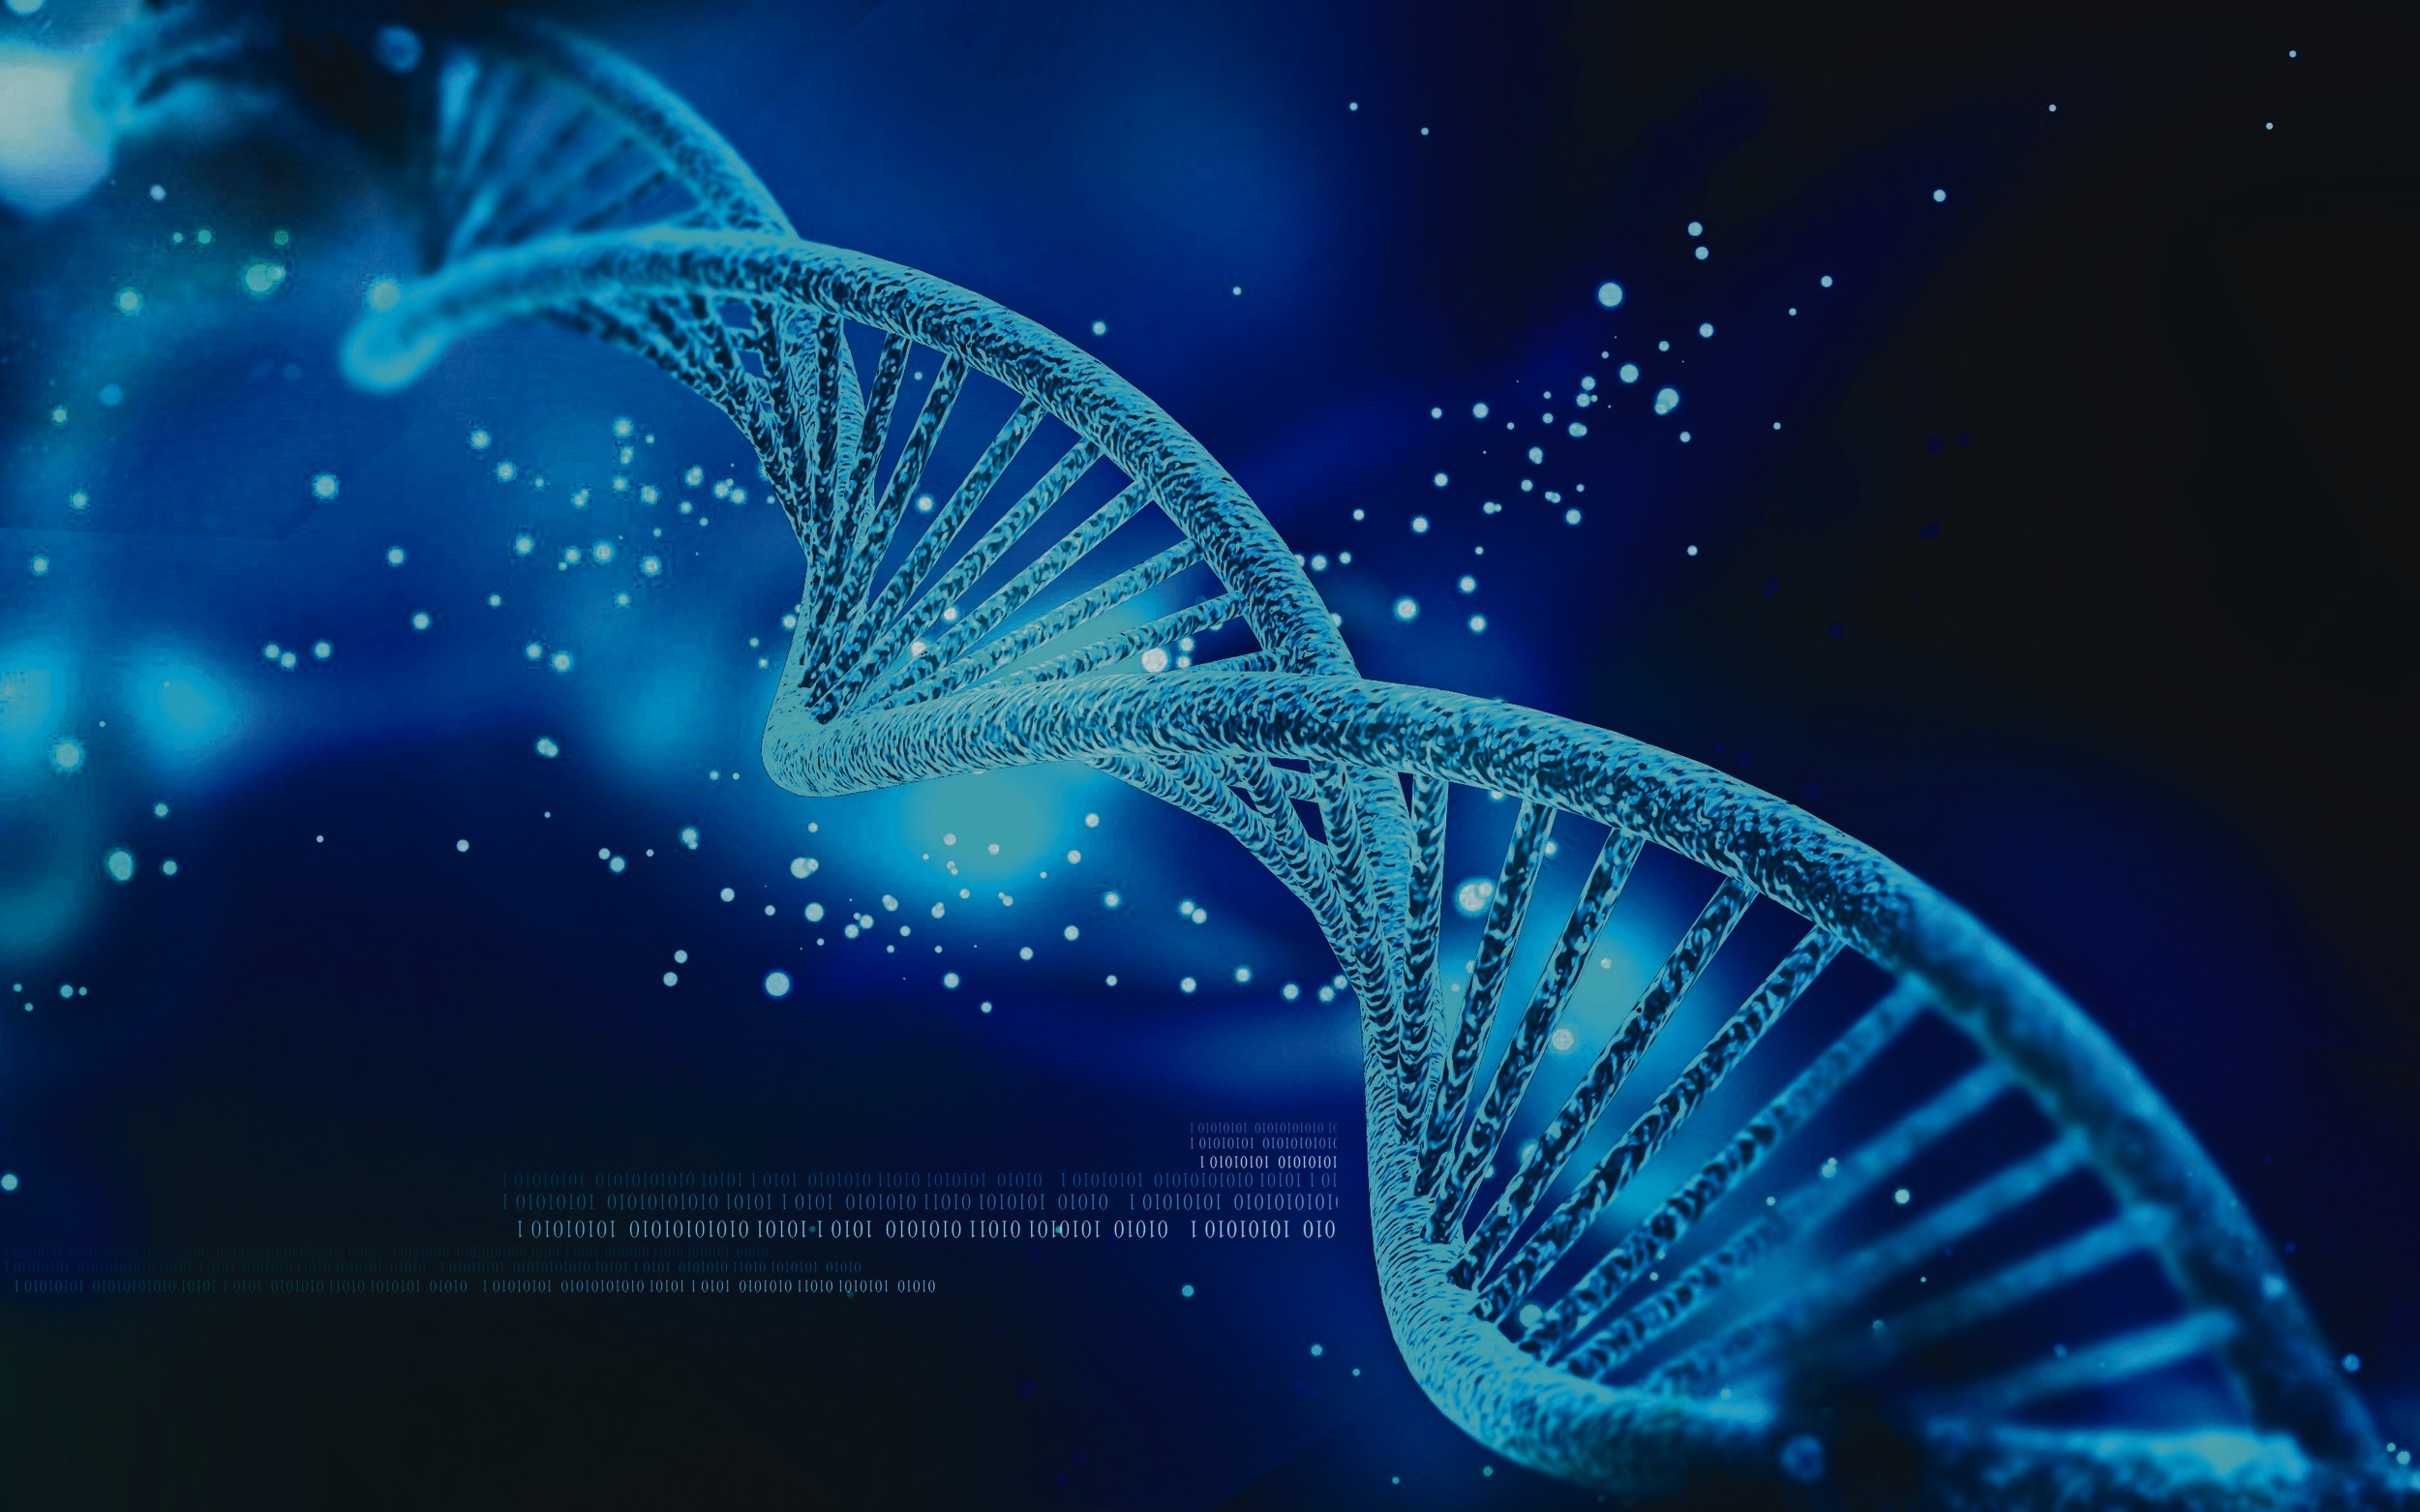 0214-hitn-dat-genomics-dna.jpg